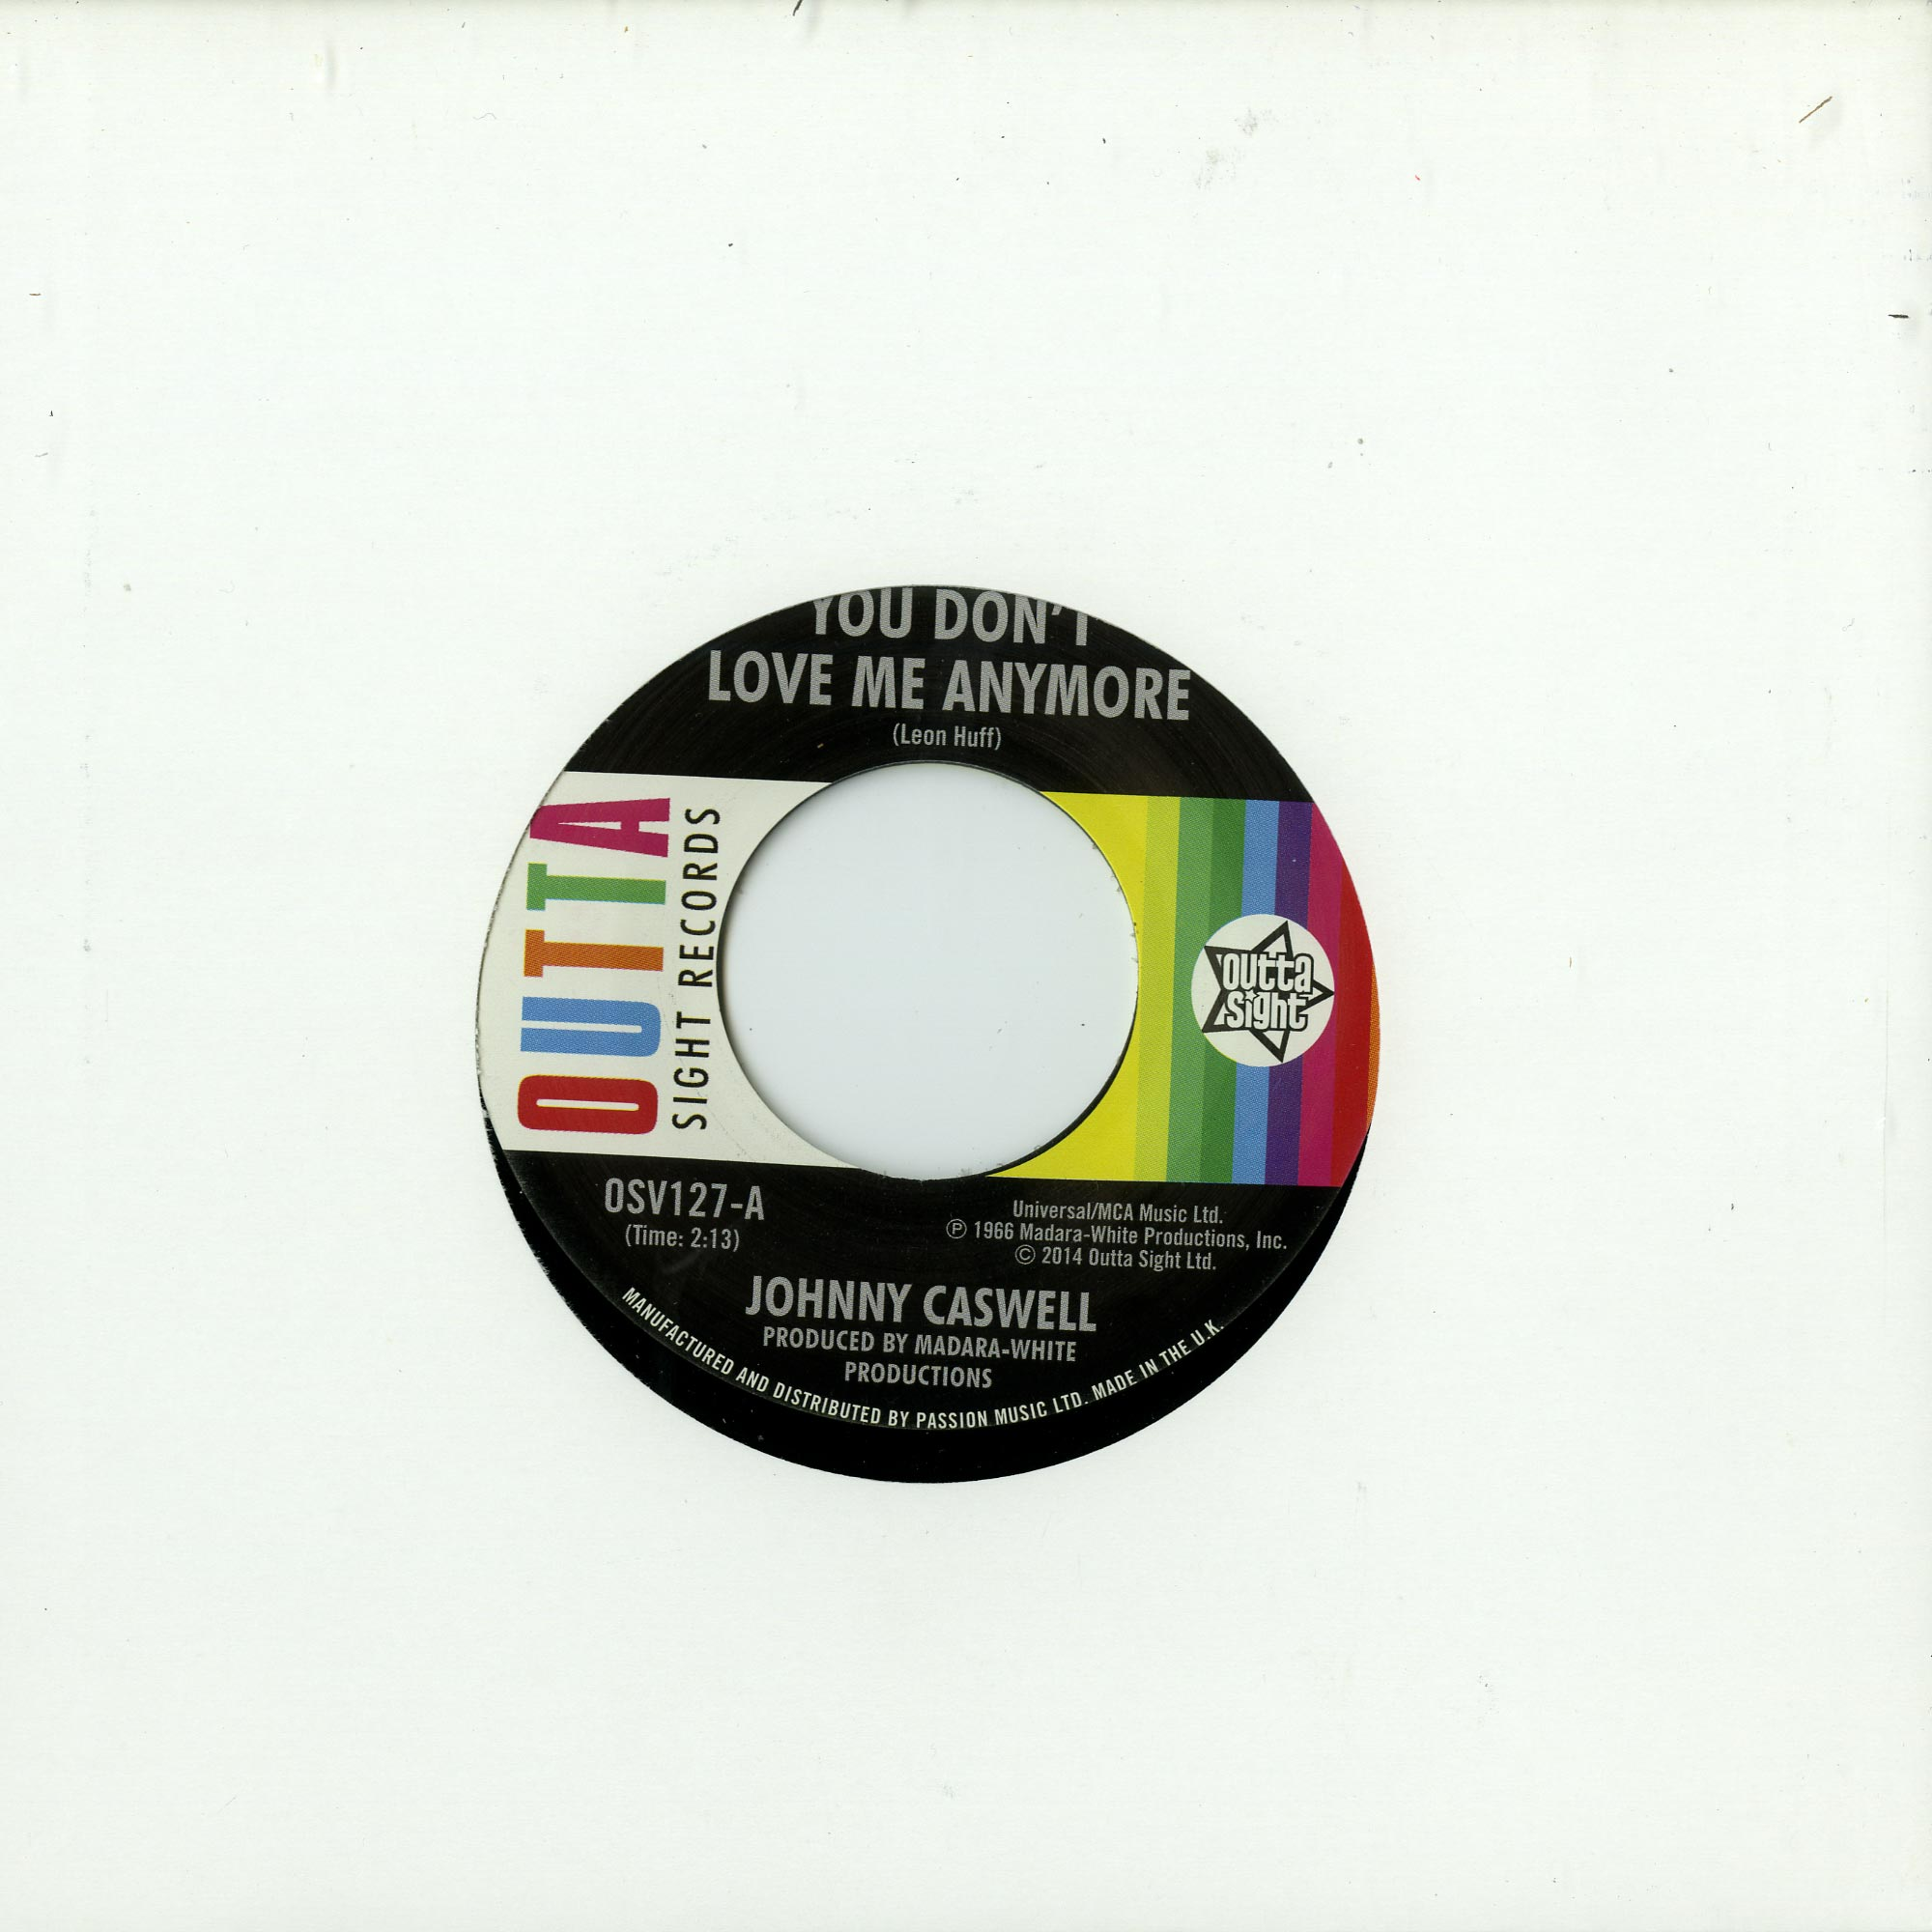 Johnny Caswell - YOU DONT LOVE ME ANYMORE / I.O.U.